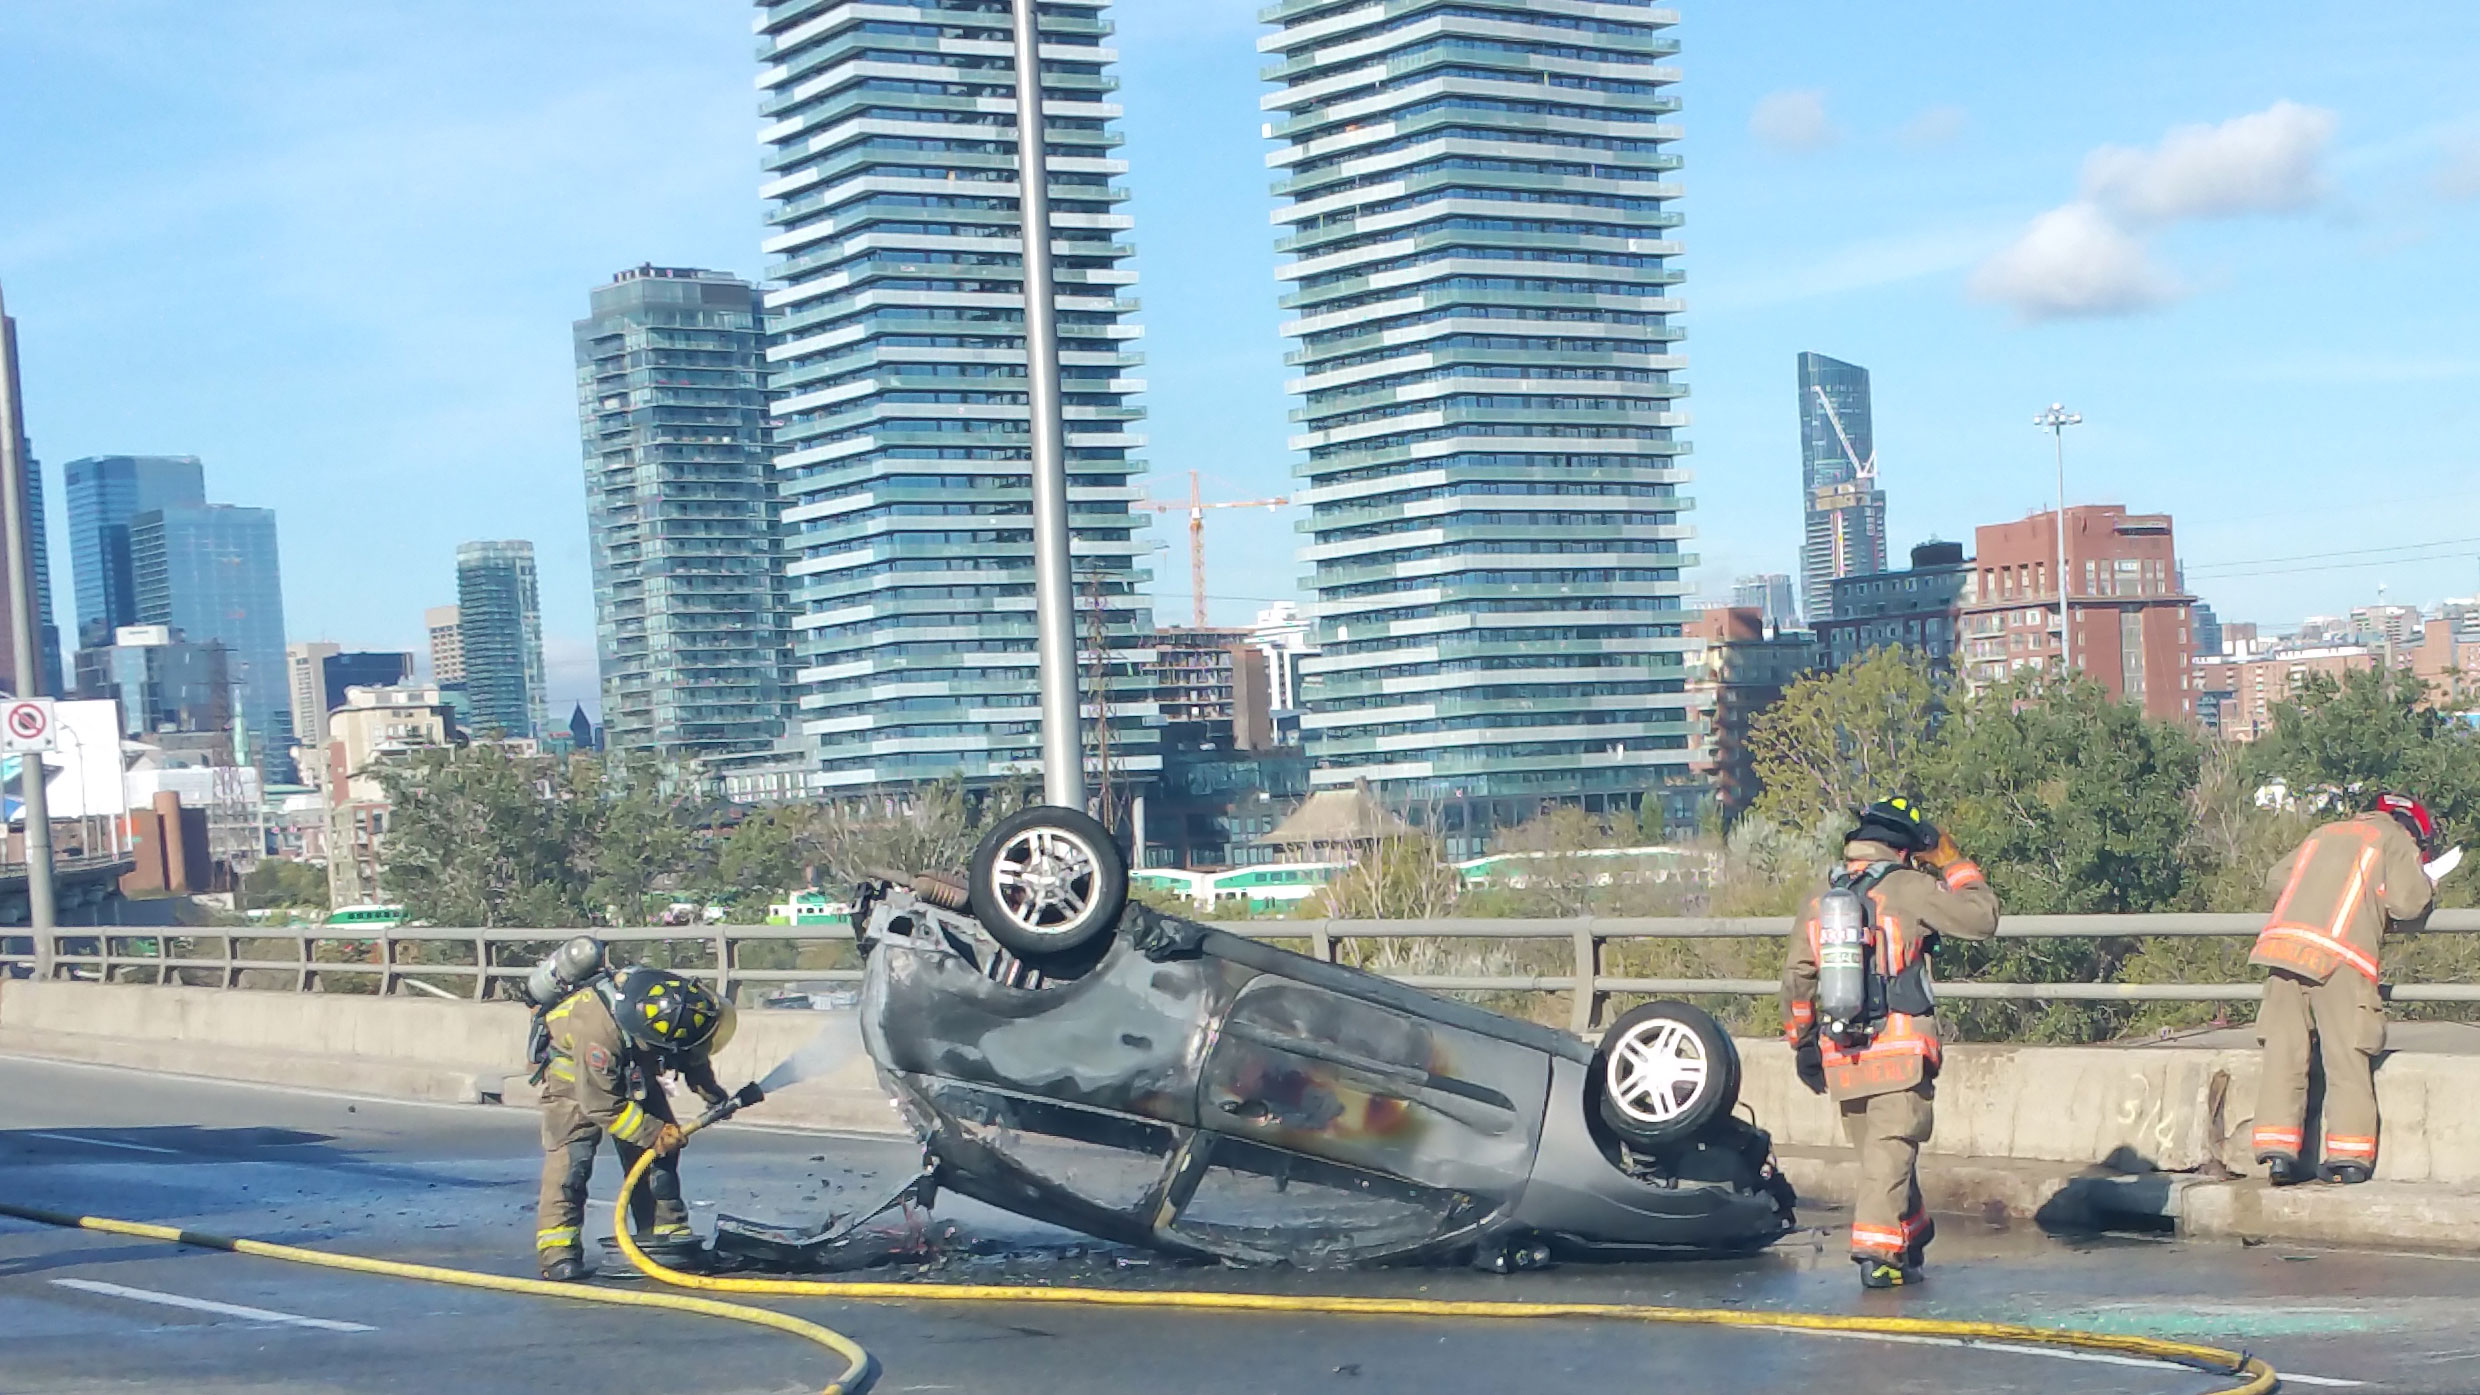 car accidents on the rise in canada, toronto: study